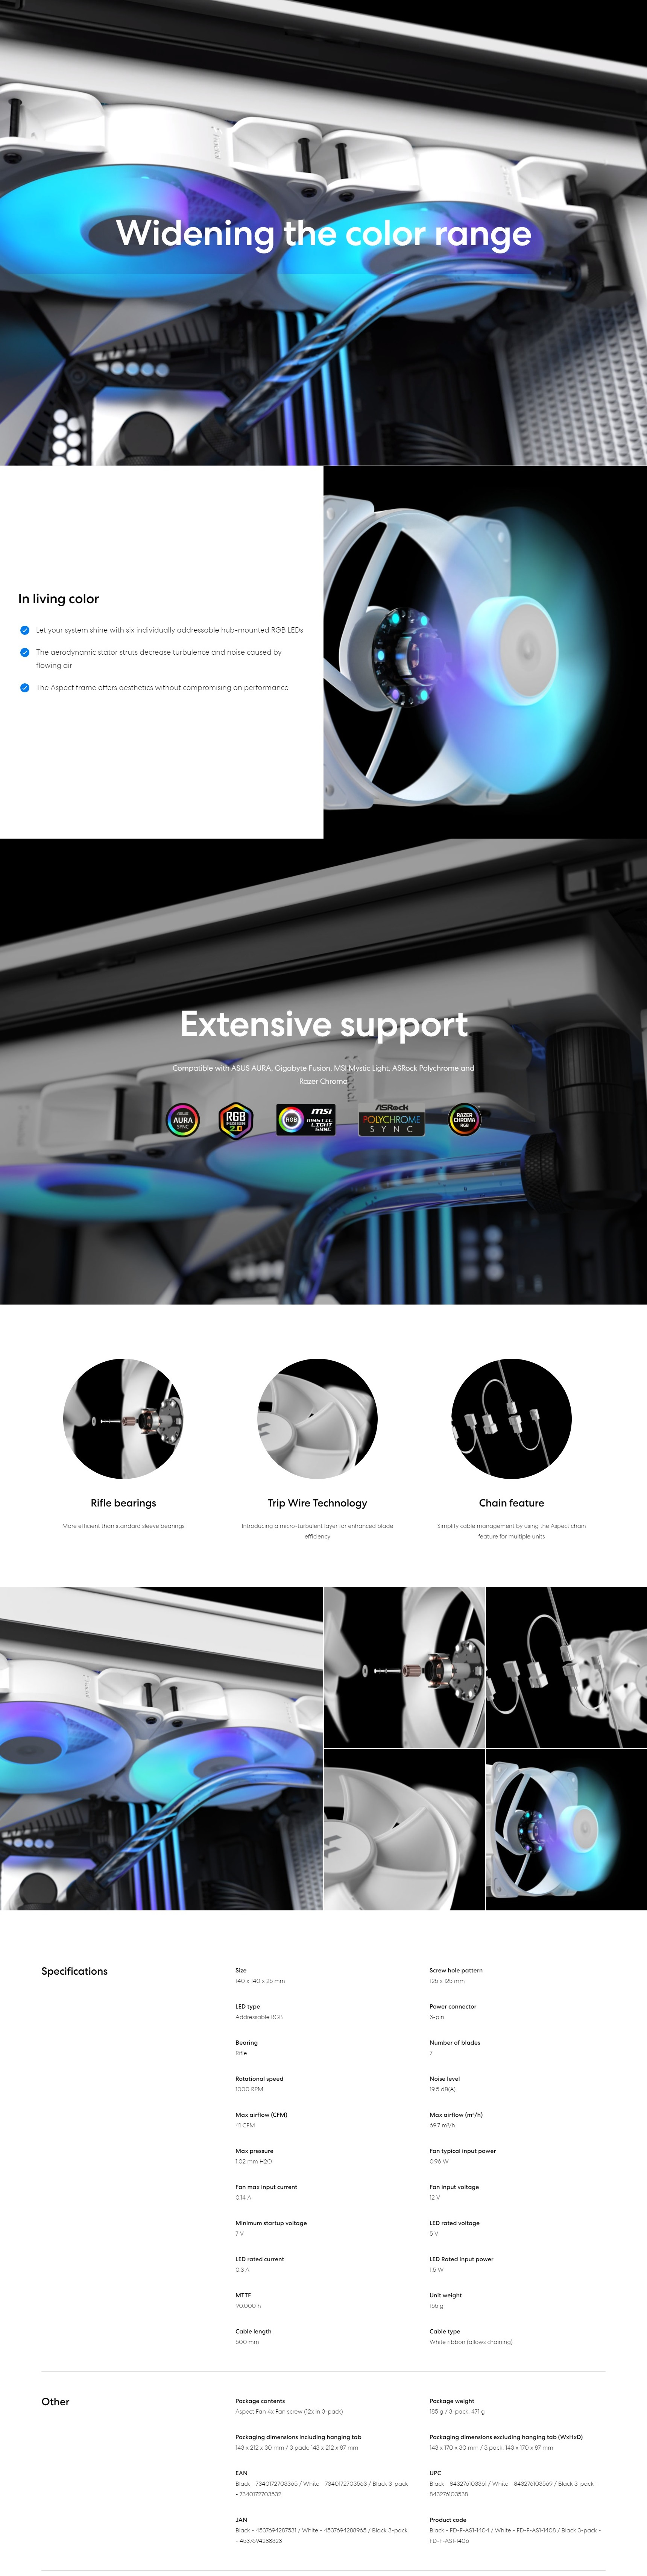 A large marketing image providing additional information about the product Fractal Design Aspect 14 RGB 140mm Fan Black 3-Pack - Additional alt info not provided